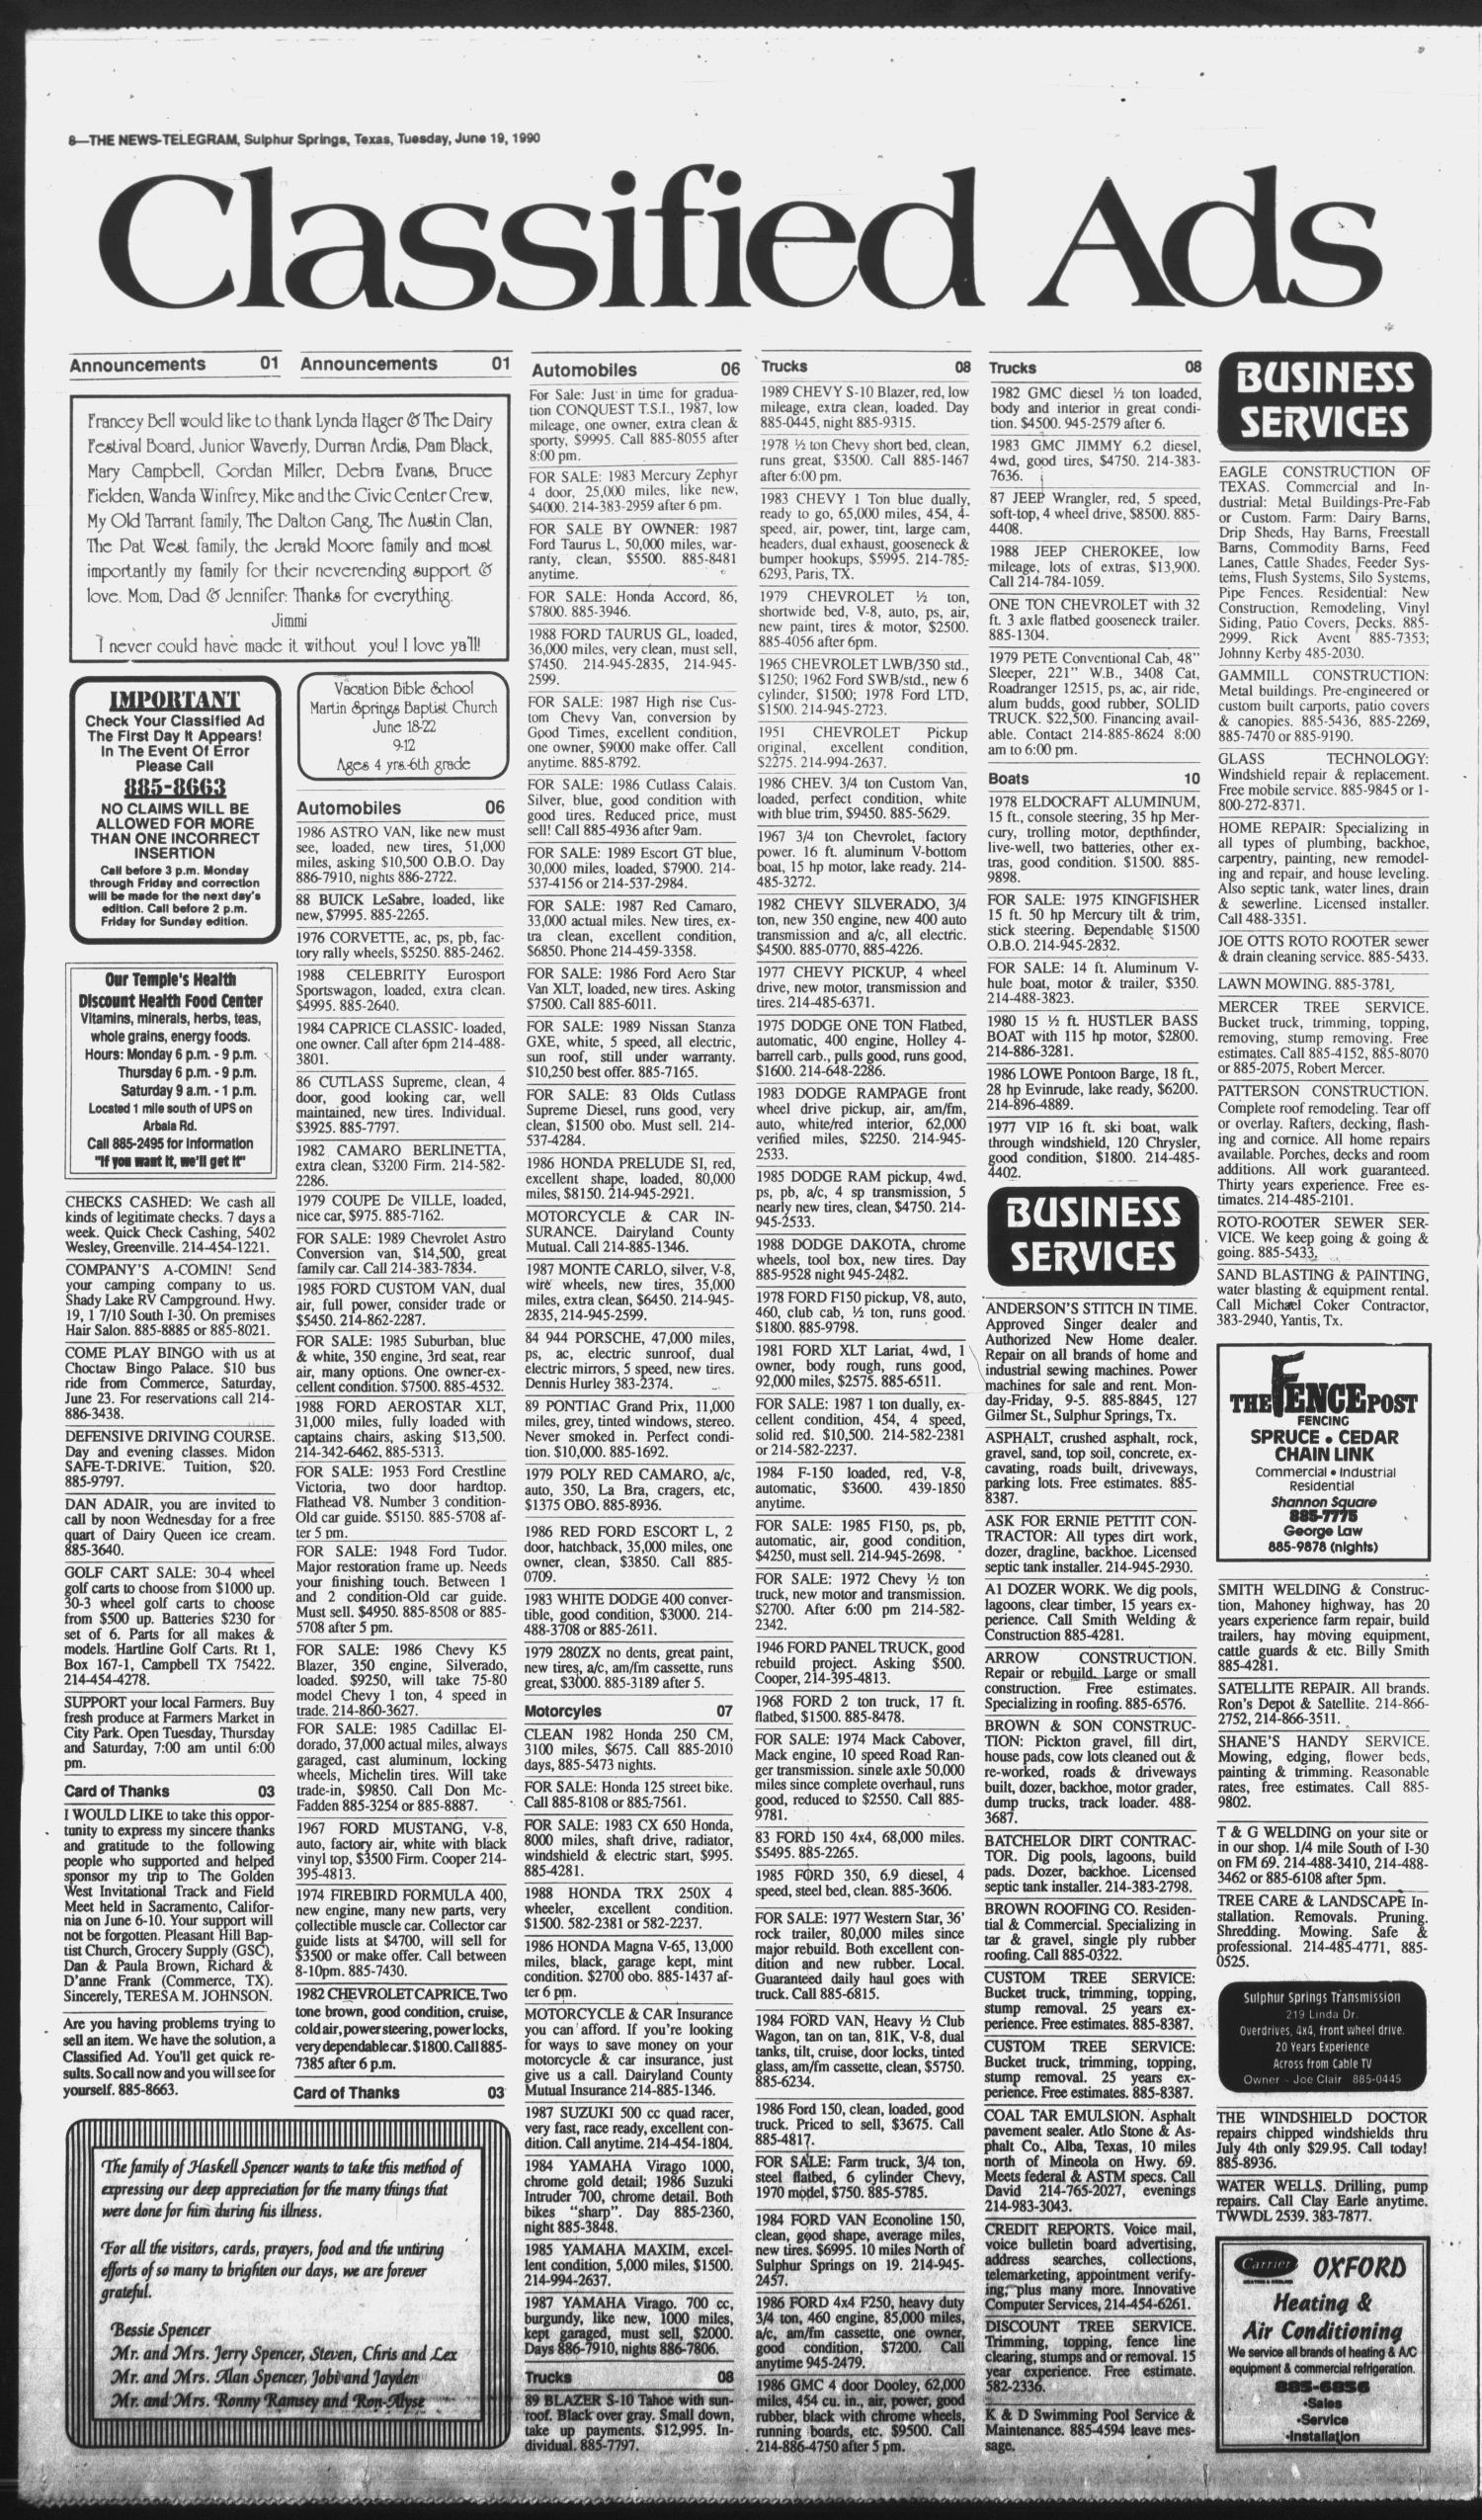 Sulphur Springs News Telegram Tex Vol 112 No 1951 Chevy Ger For Sale 145 Ed 1 Tuesday June 19 1990 Page 8 Of 12 The Portal To Texas History